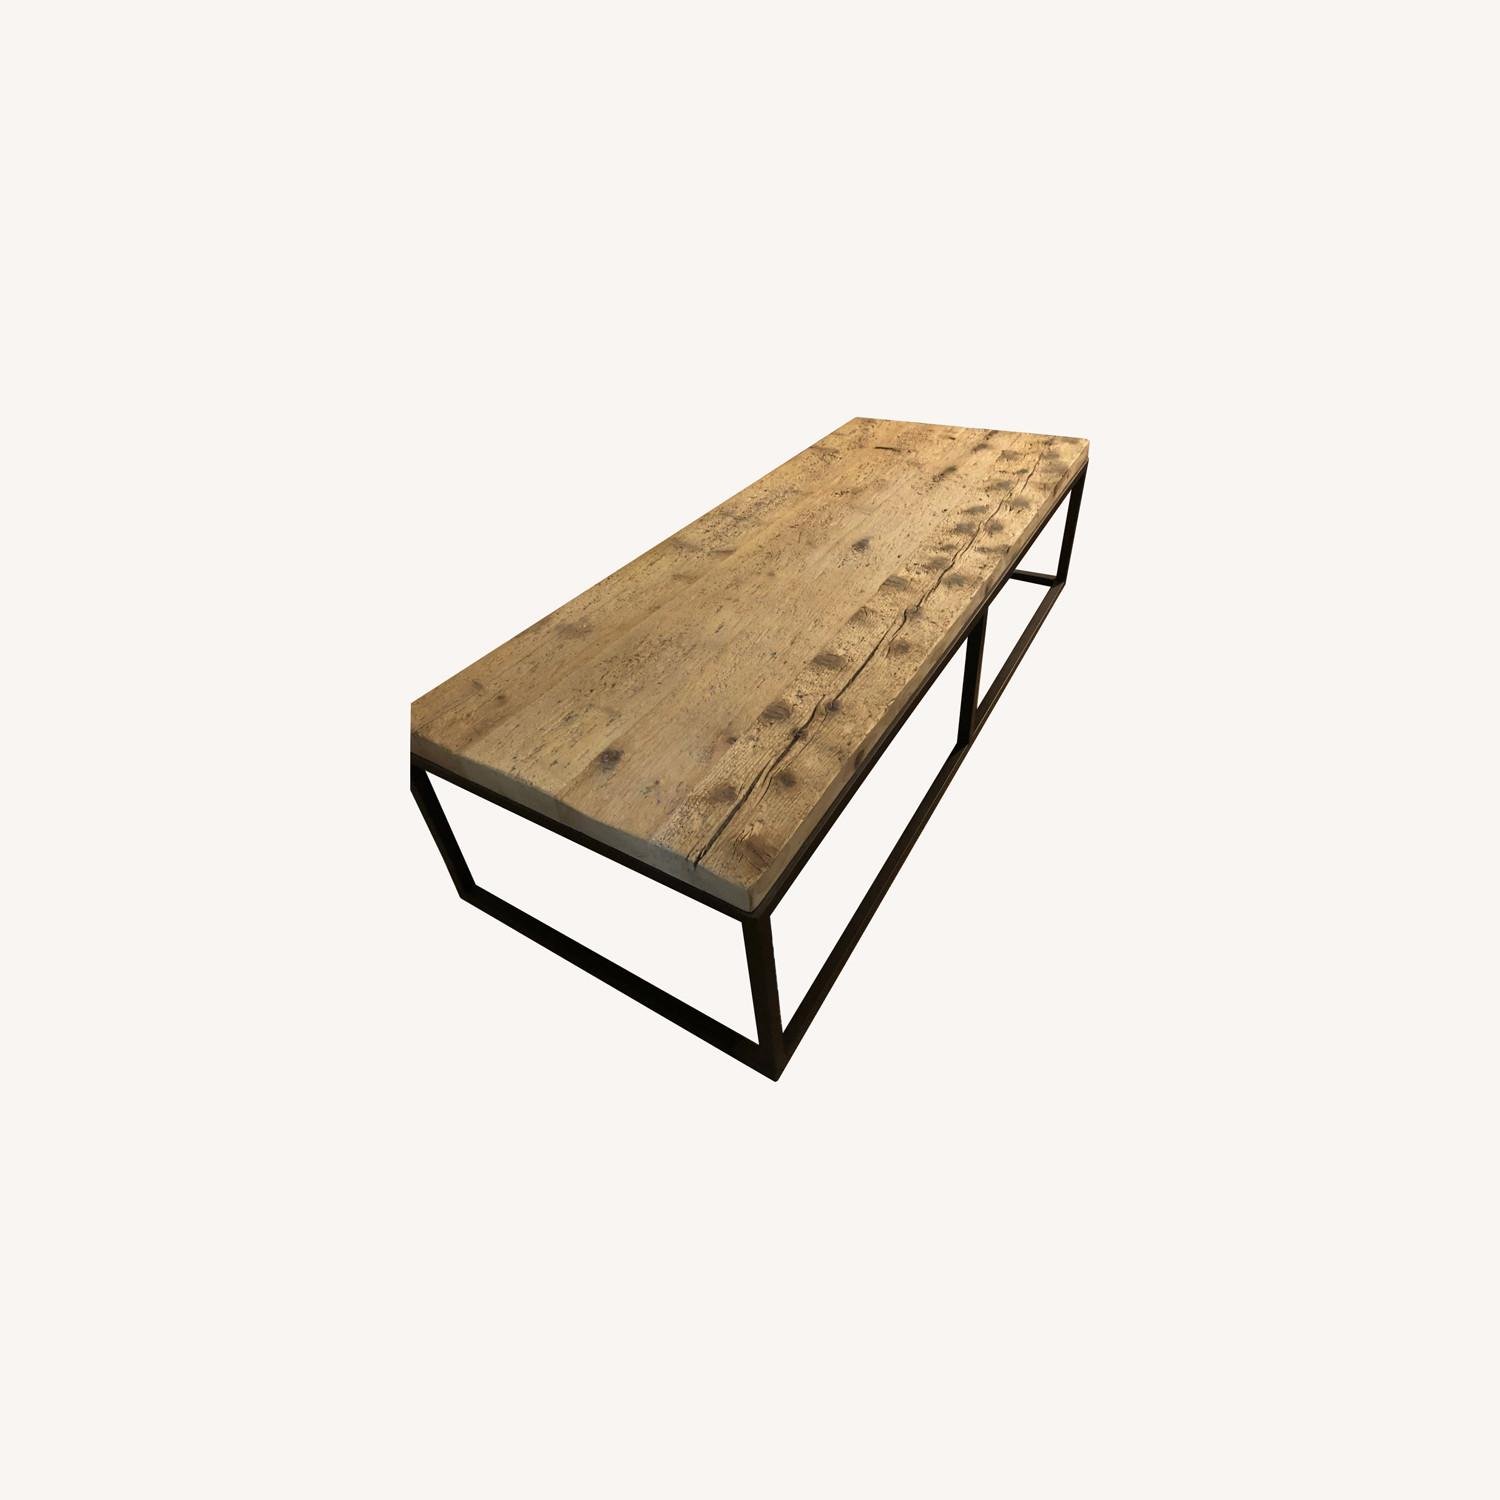 Restoration Hardware Reclaimed Coffee Table - image-0